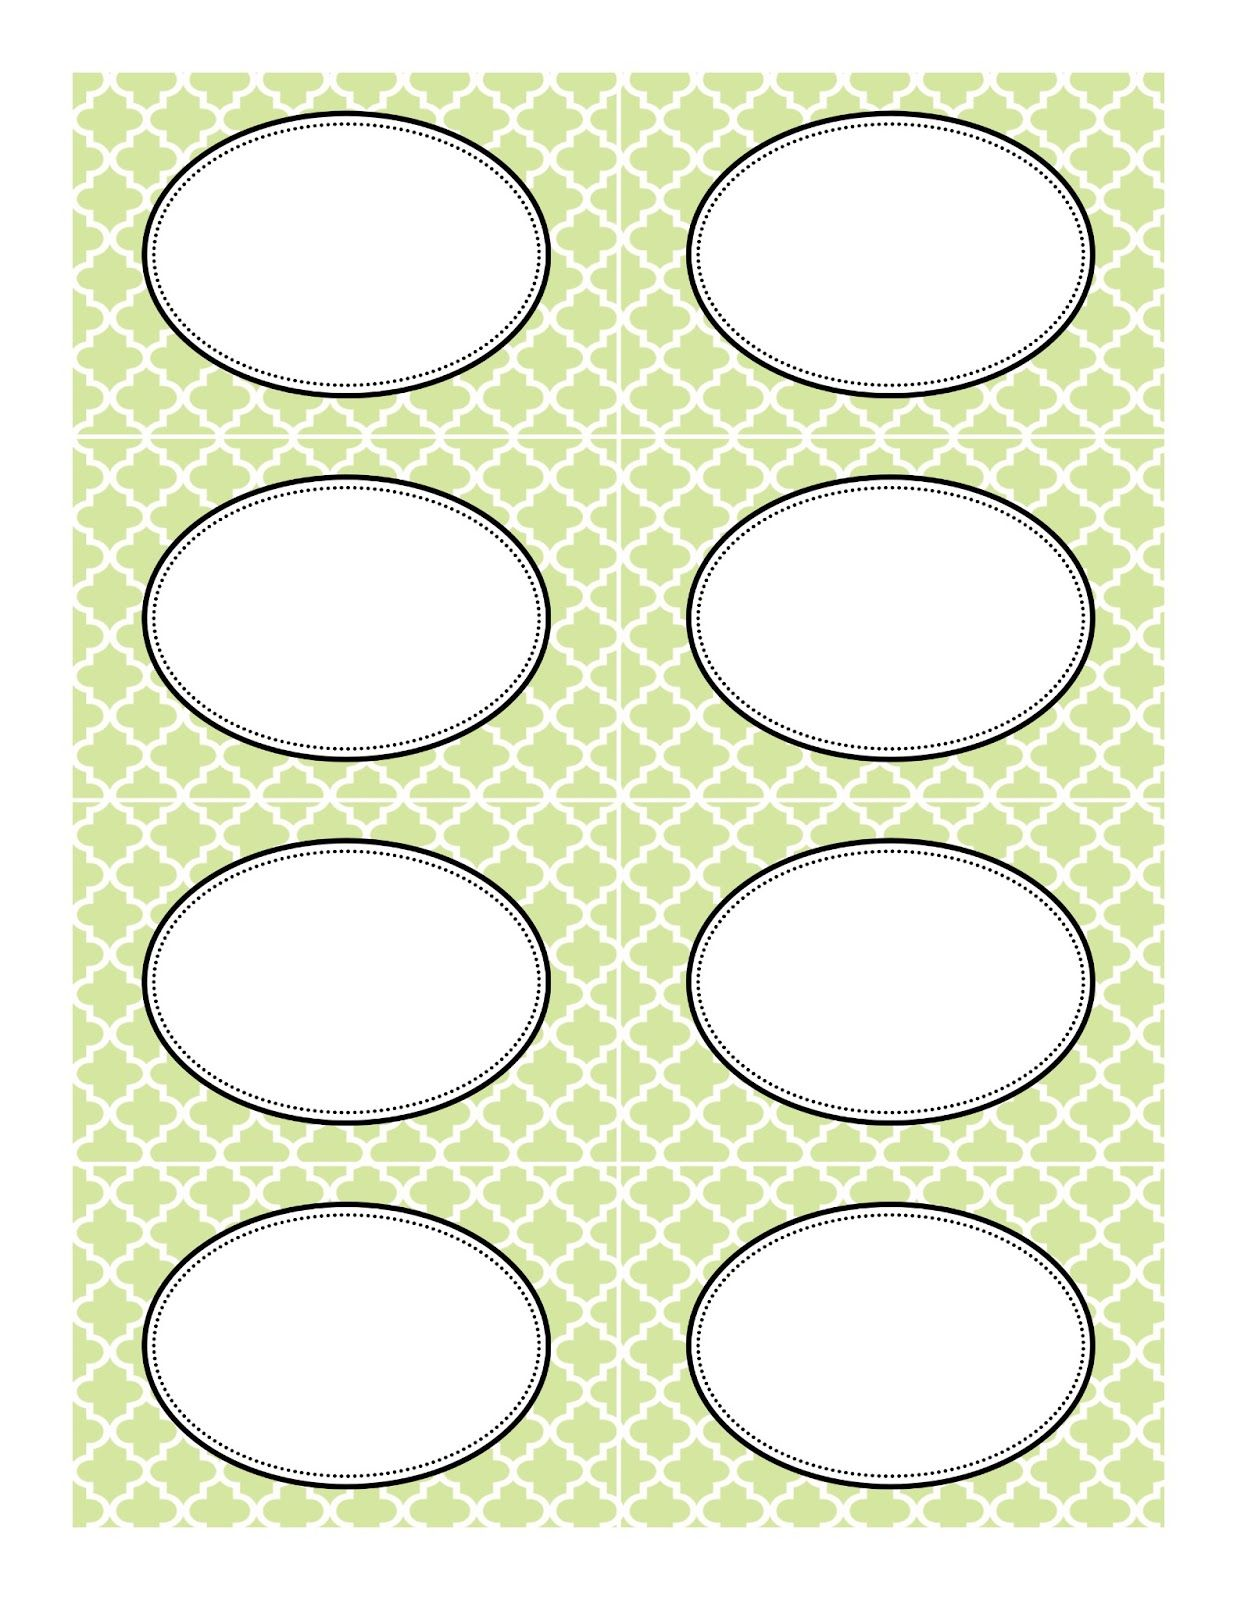 Free Printable Labels In A Few Different Colors And Patterns That ...